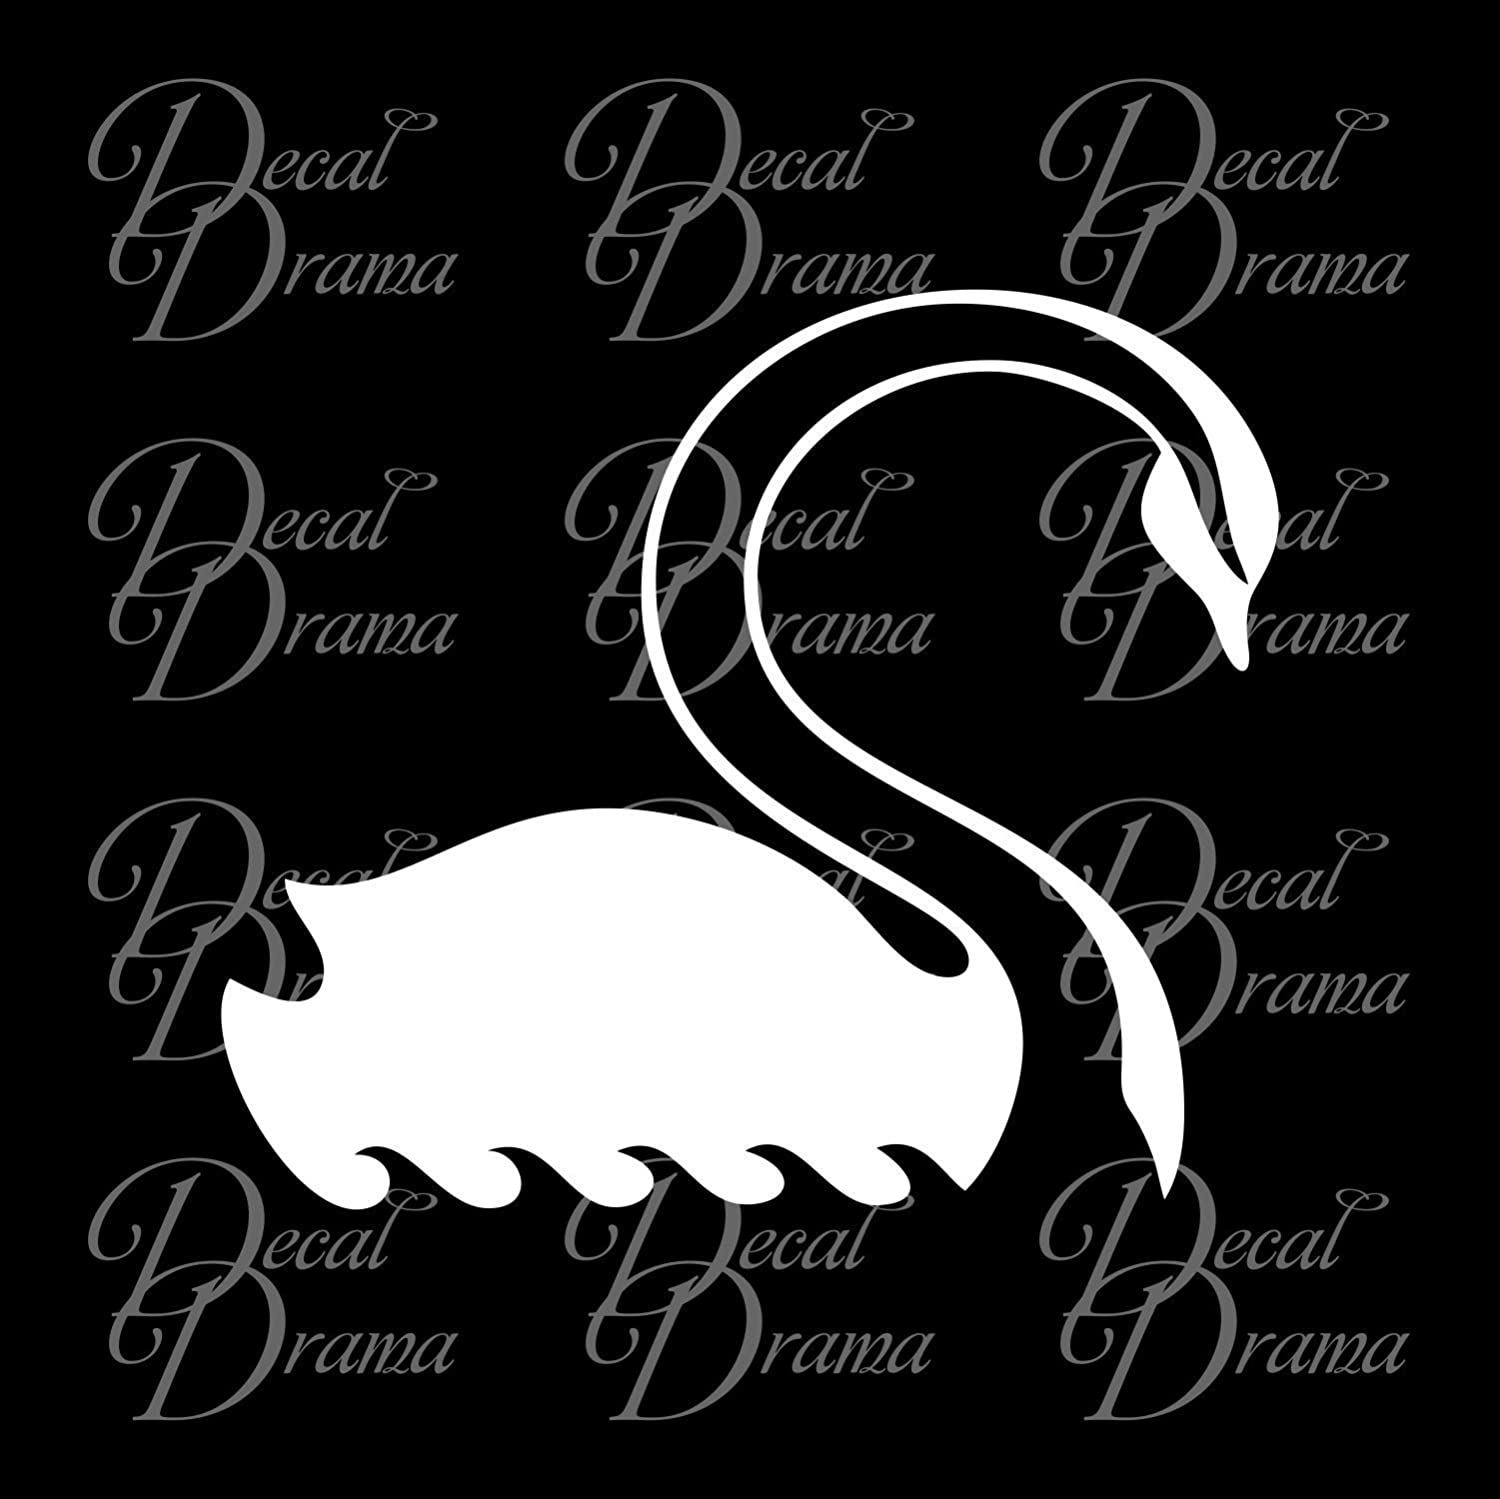 Captain swan custom small vinyl decal once upon a time ouat snow white storybrooke emma swan regina captain hook abc cars trucks vans laptops cups